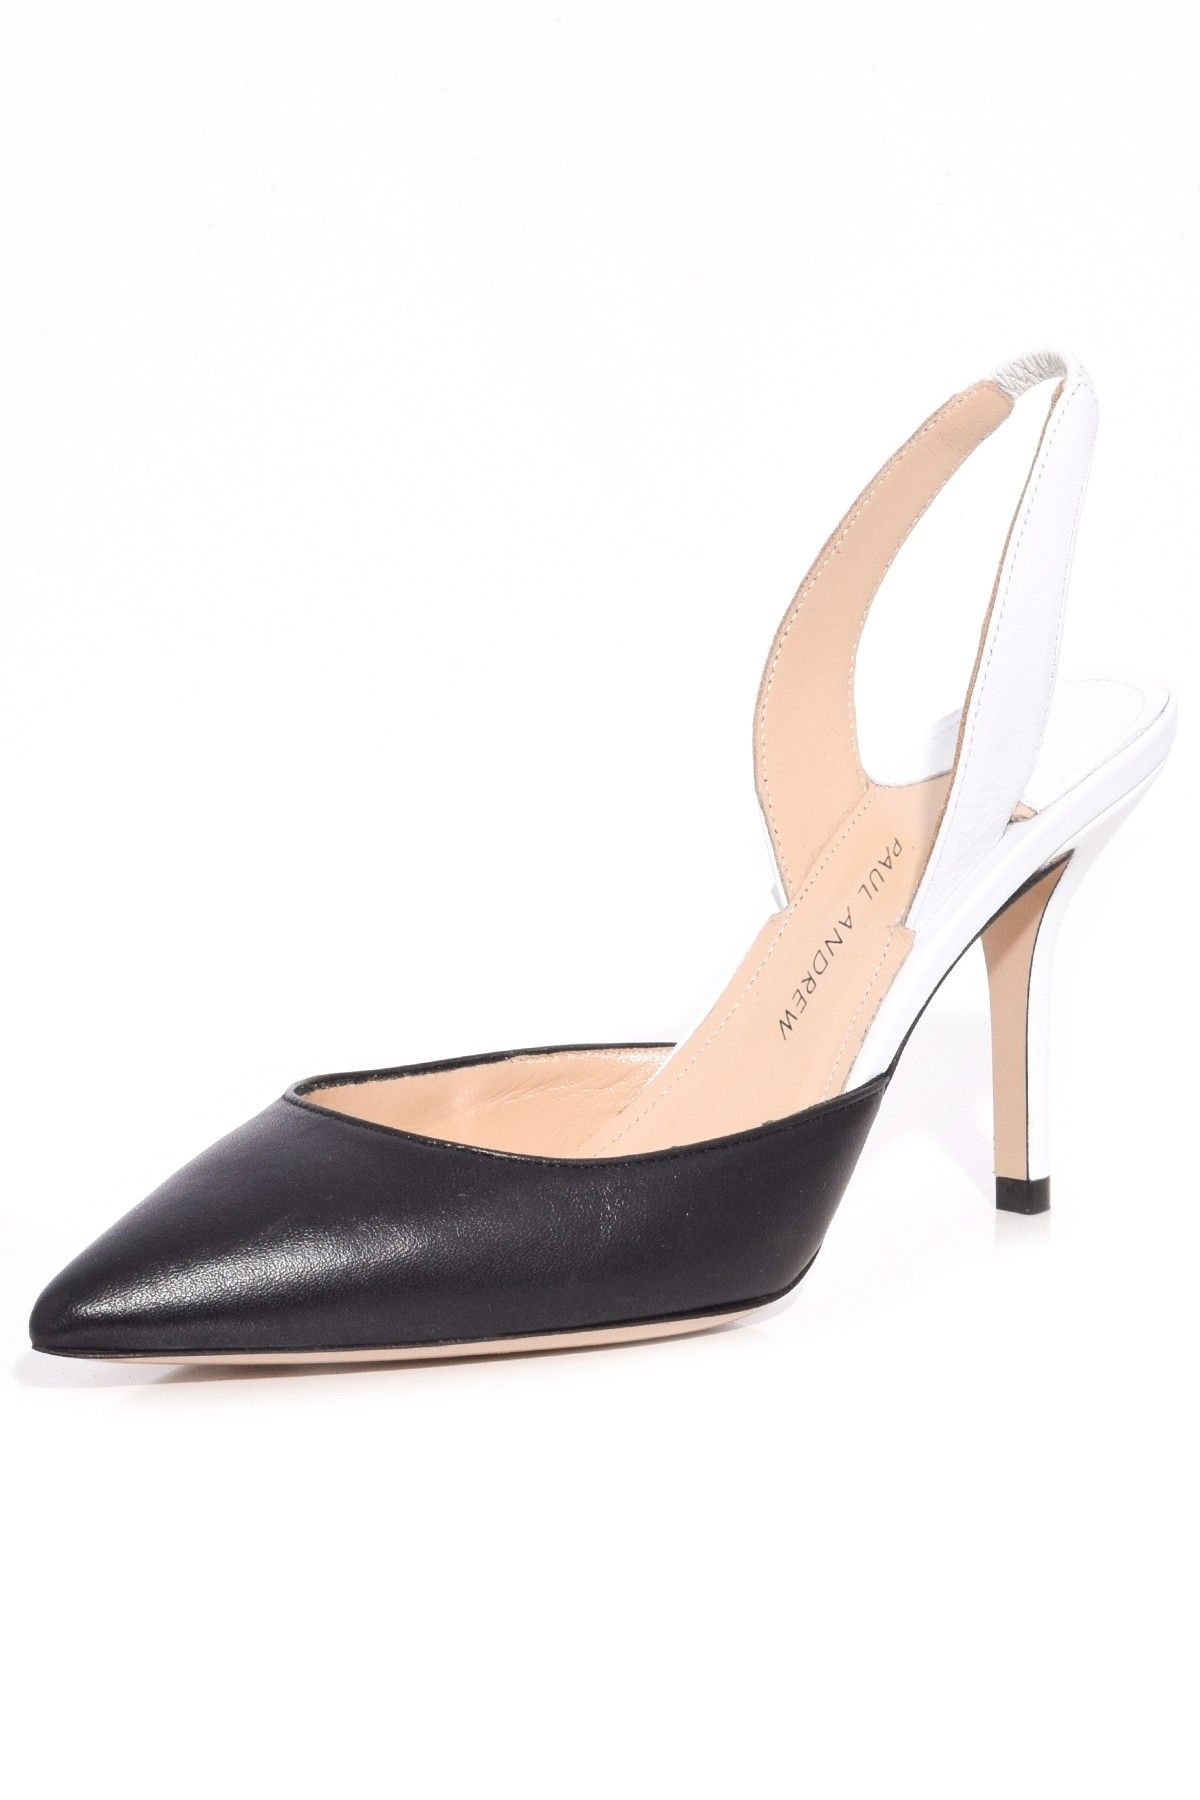 5f44a3b43b7 Paul Andrew AW Slingback Pump in Black White